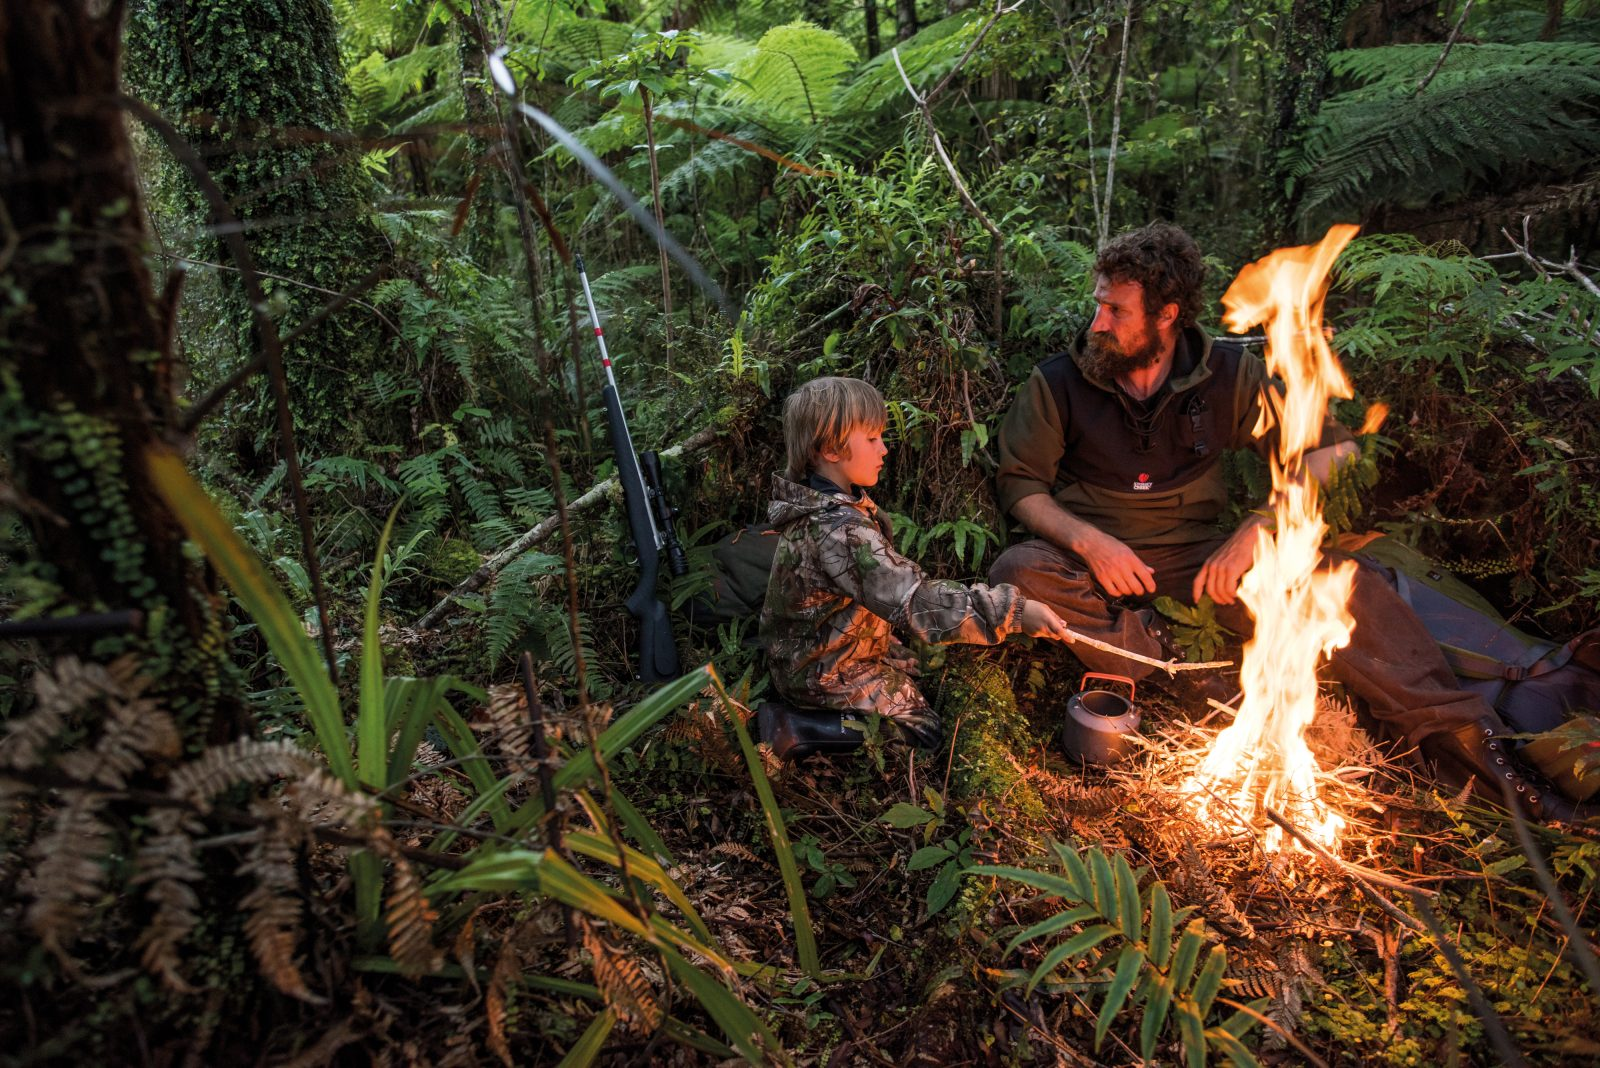 """Another night in the woods of Haast for the James boys, and another opportunity to school his son in the demanding curriculum provided by wild places. """"I think it's good for everyone to sleep alone in the bush,"""" says James. """"Not in a tent, with the security of the walls, but under the stars. It's scary, we've all got our demons and our dark spots, but it's good for you."""""""